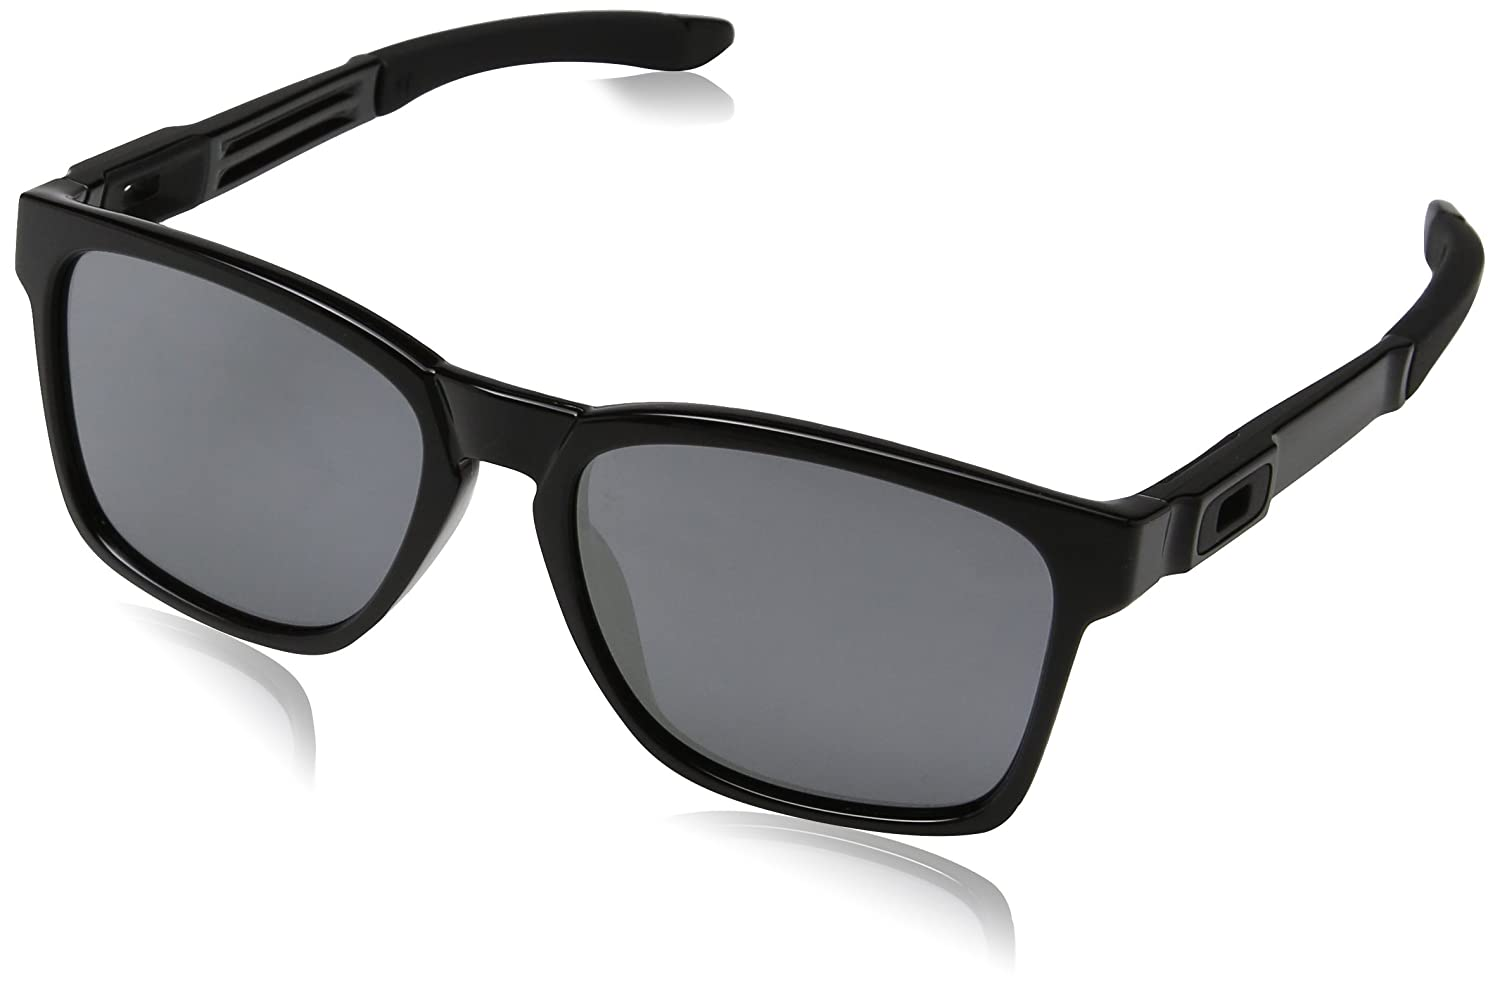 Oakley Gafas de sol Sonnenbrille Catalyst Polished Black, 56 ...